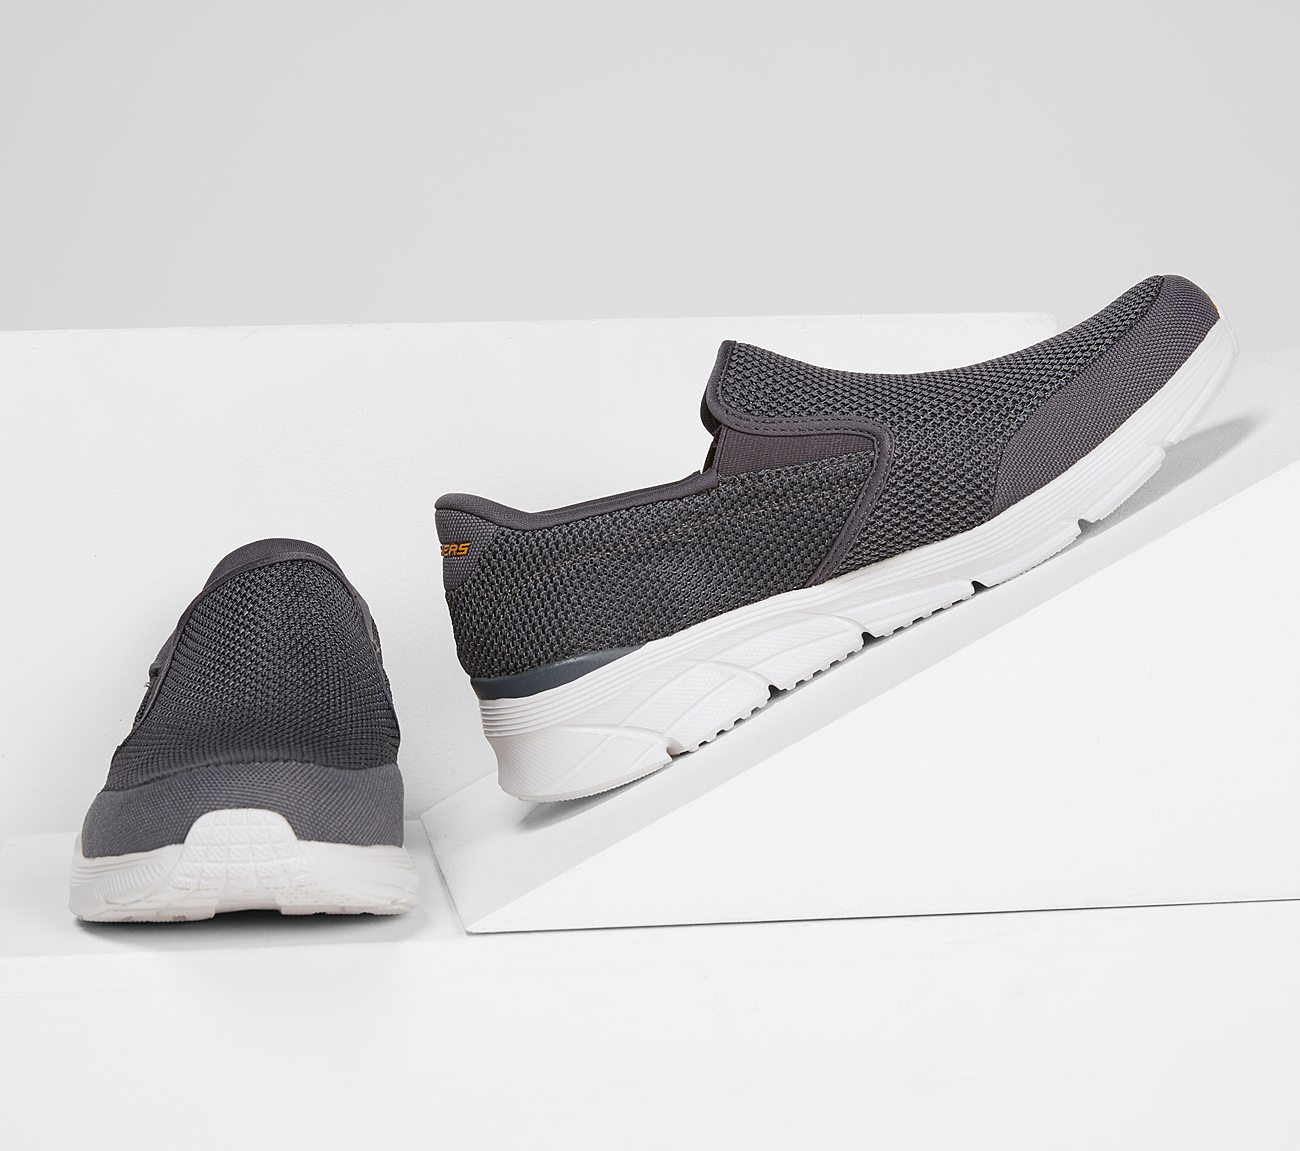 Skechers – they're machine washable, breathable, practical and super comfy